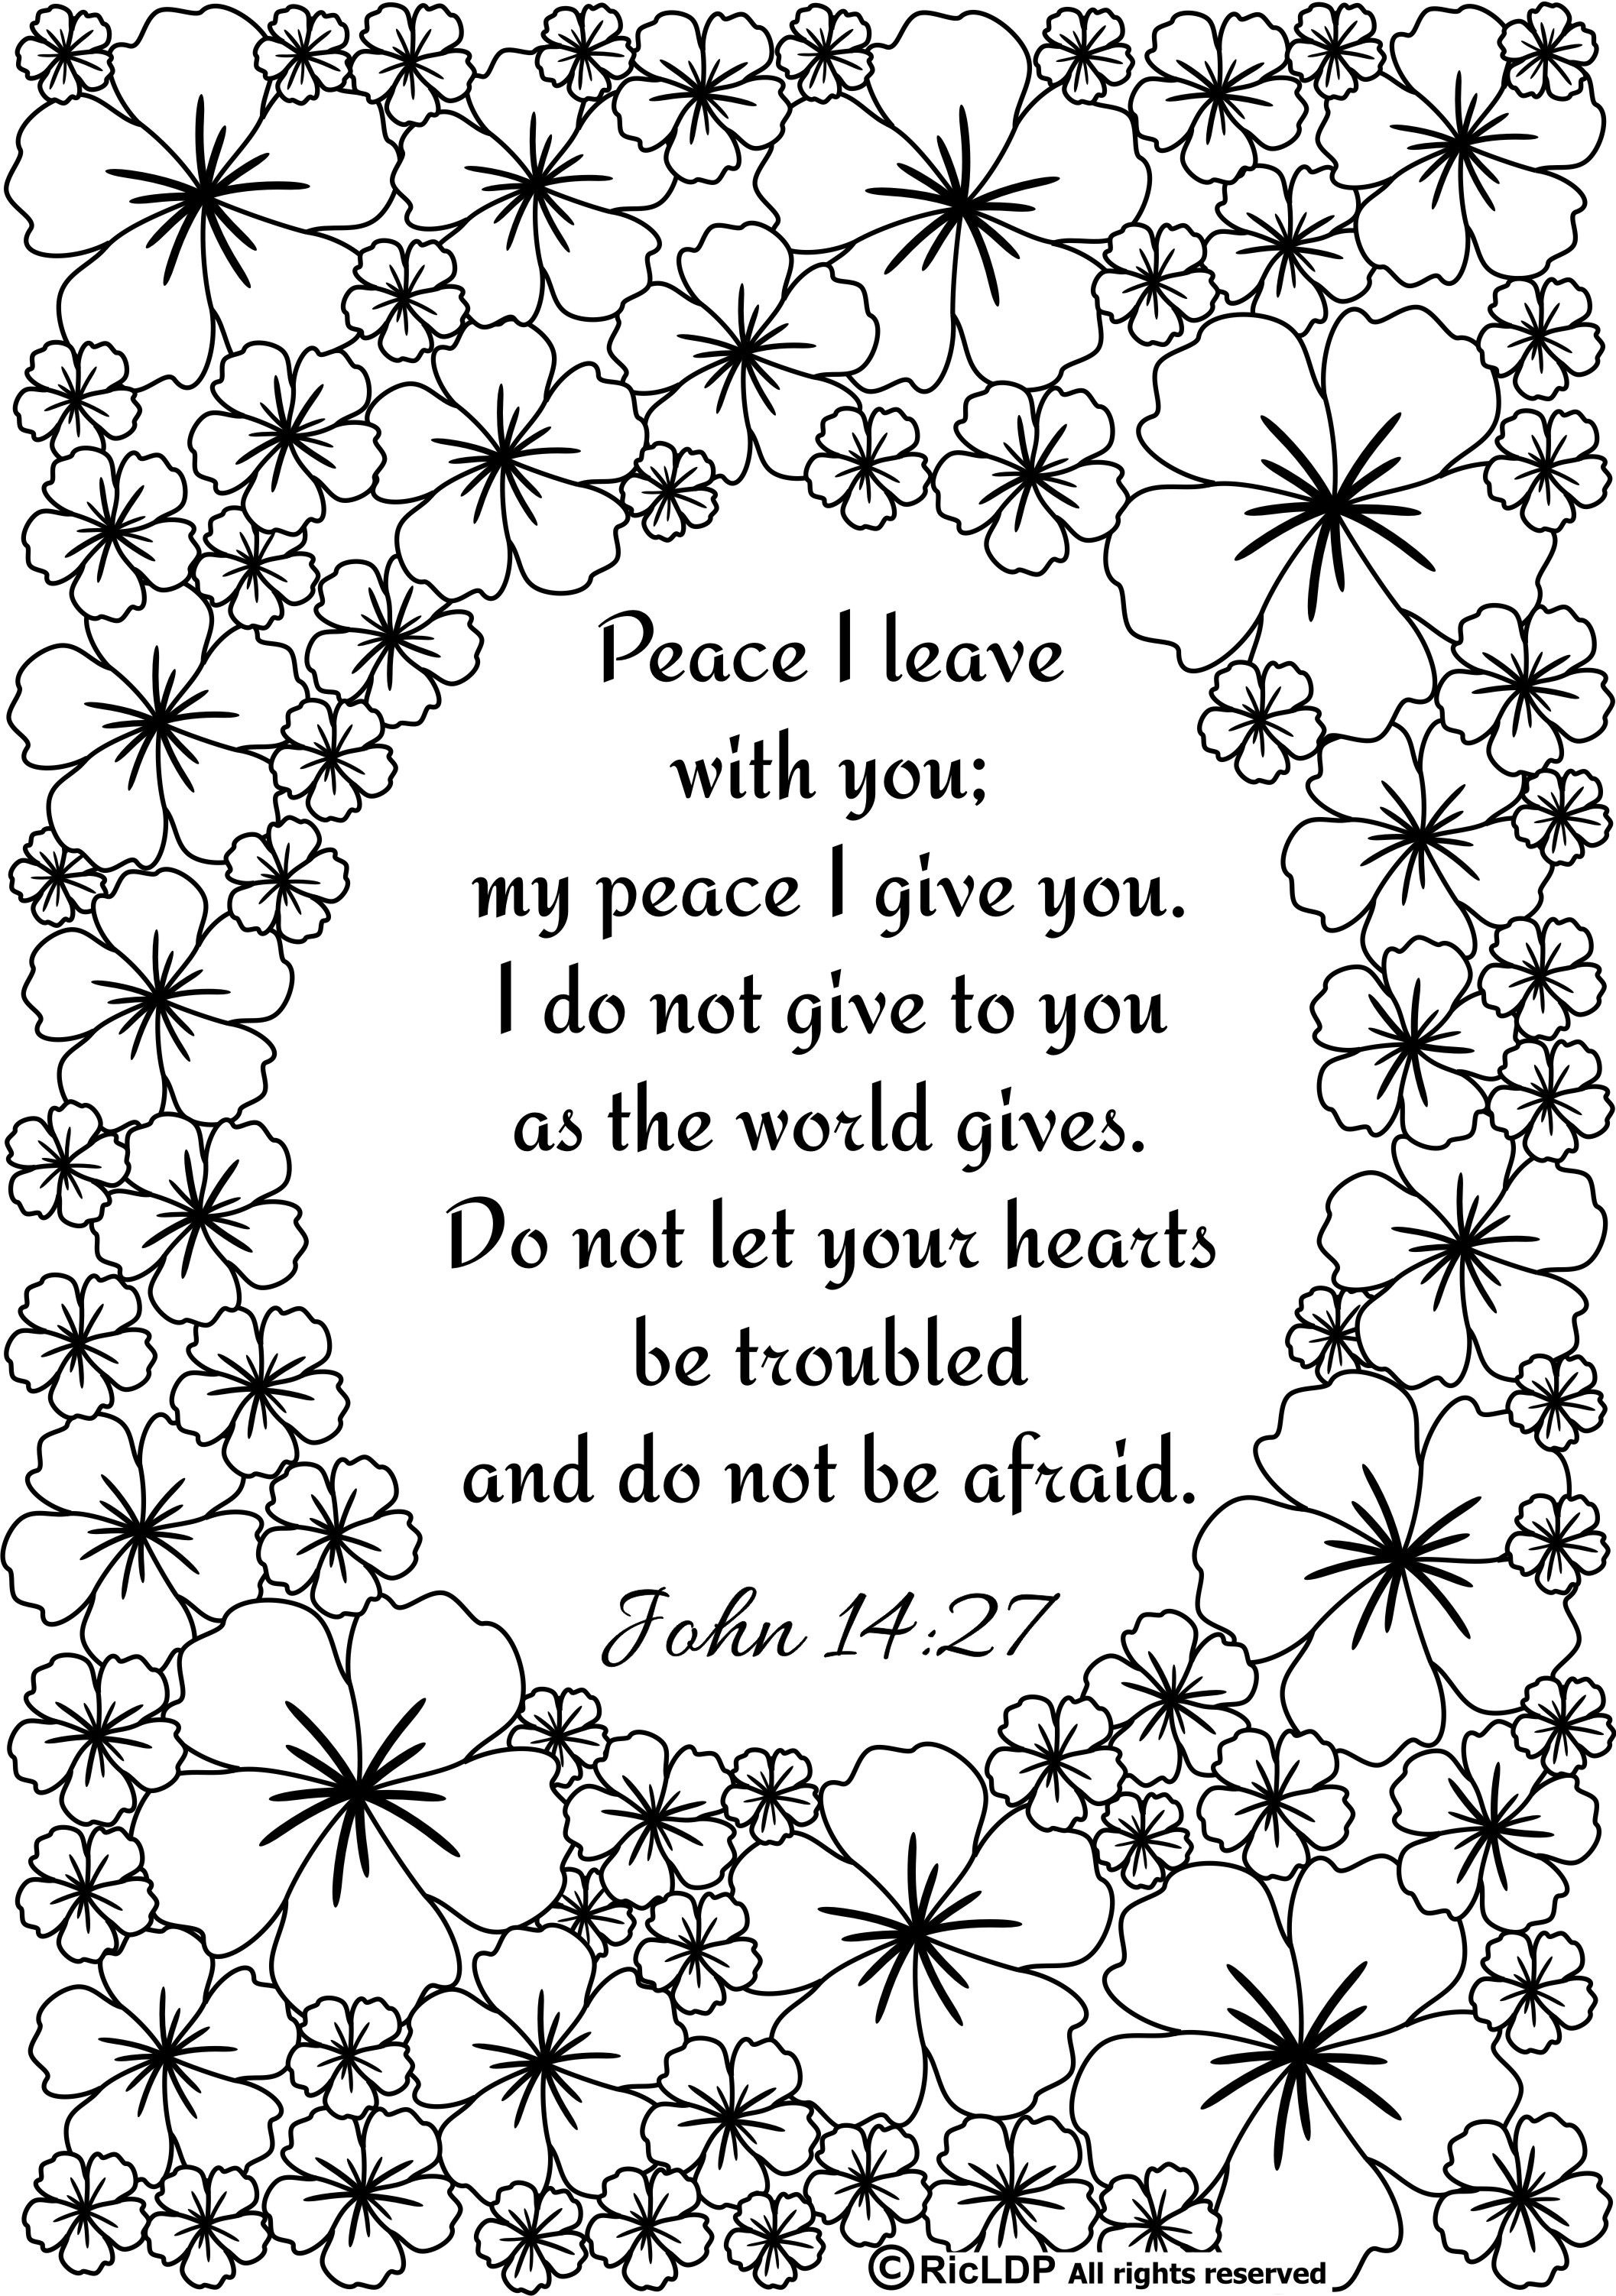 Ricldp Artworks (Ricldp) | Coloring Pages!!! | Bible Verse Coloring - Free Printable Bible Coloring Pages With Scriptures